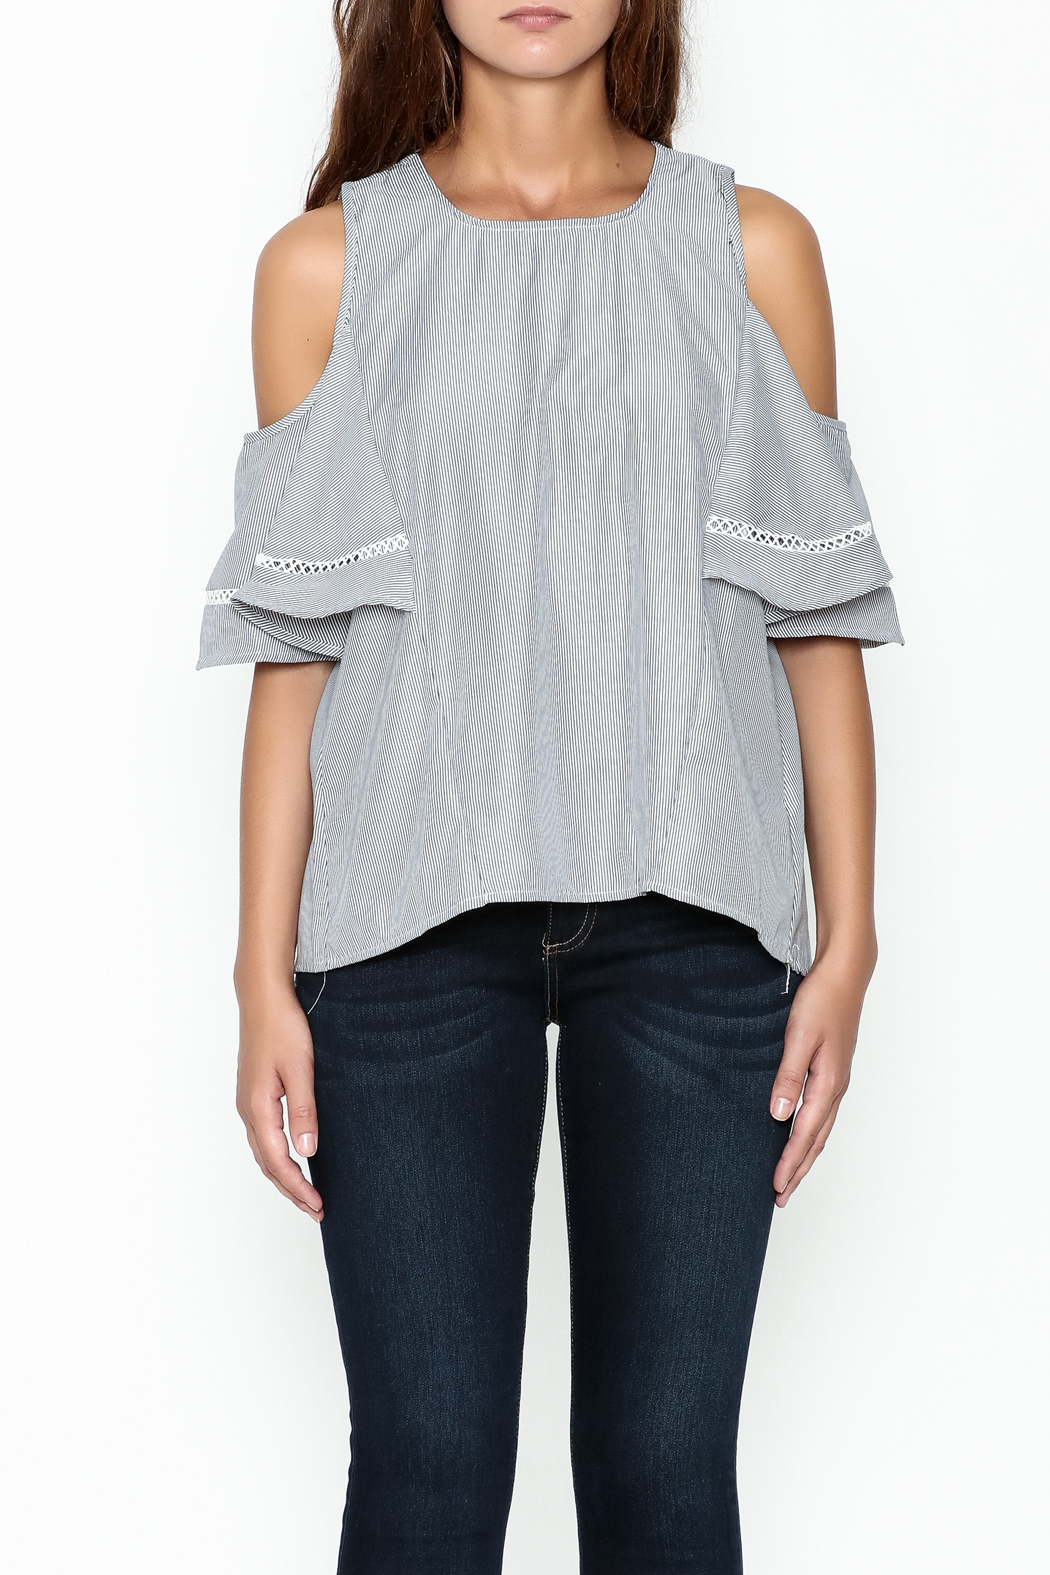 Grace & Emma Grey Cold Shoulder Top - Front Full Image